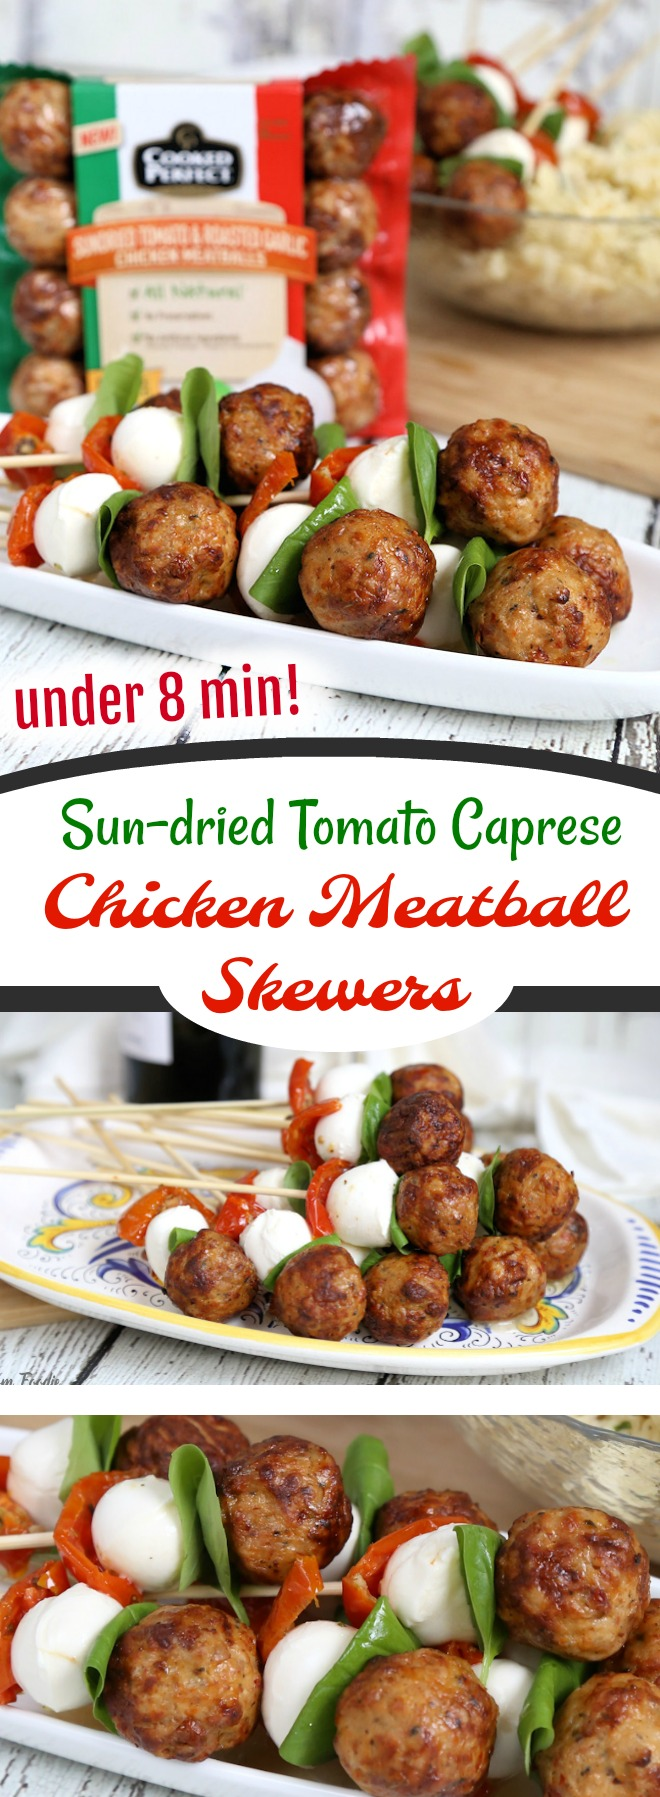 Sun-dried Tomato Caprese Meatball Skewers